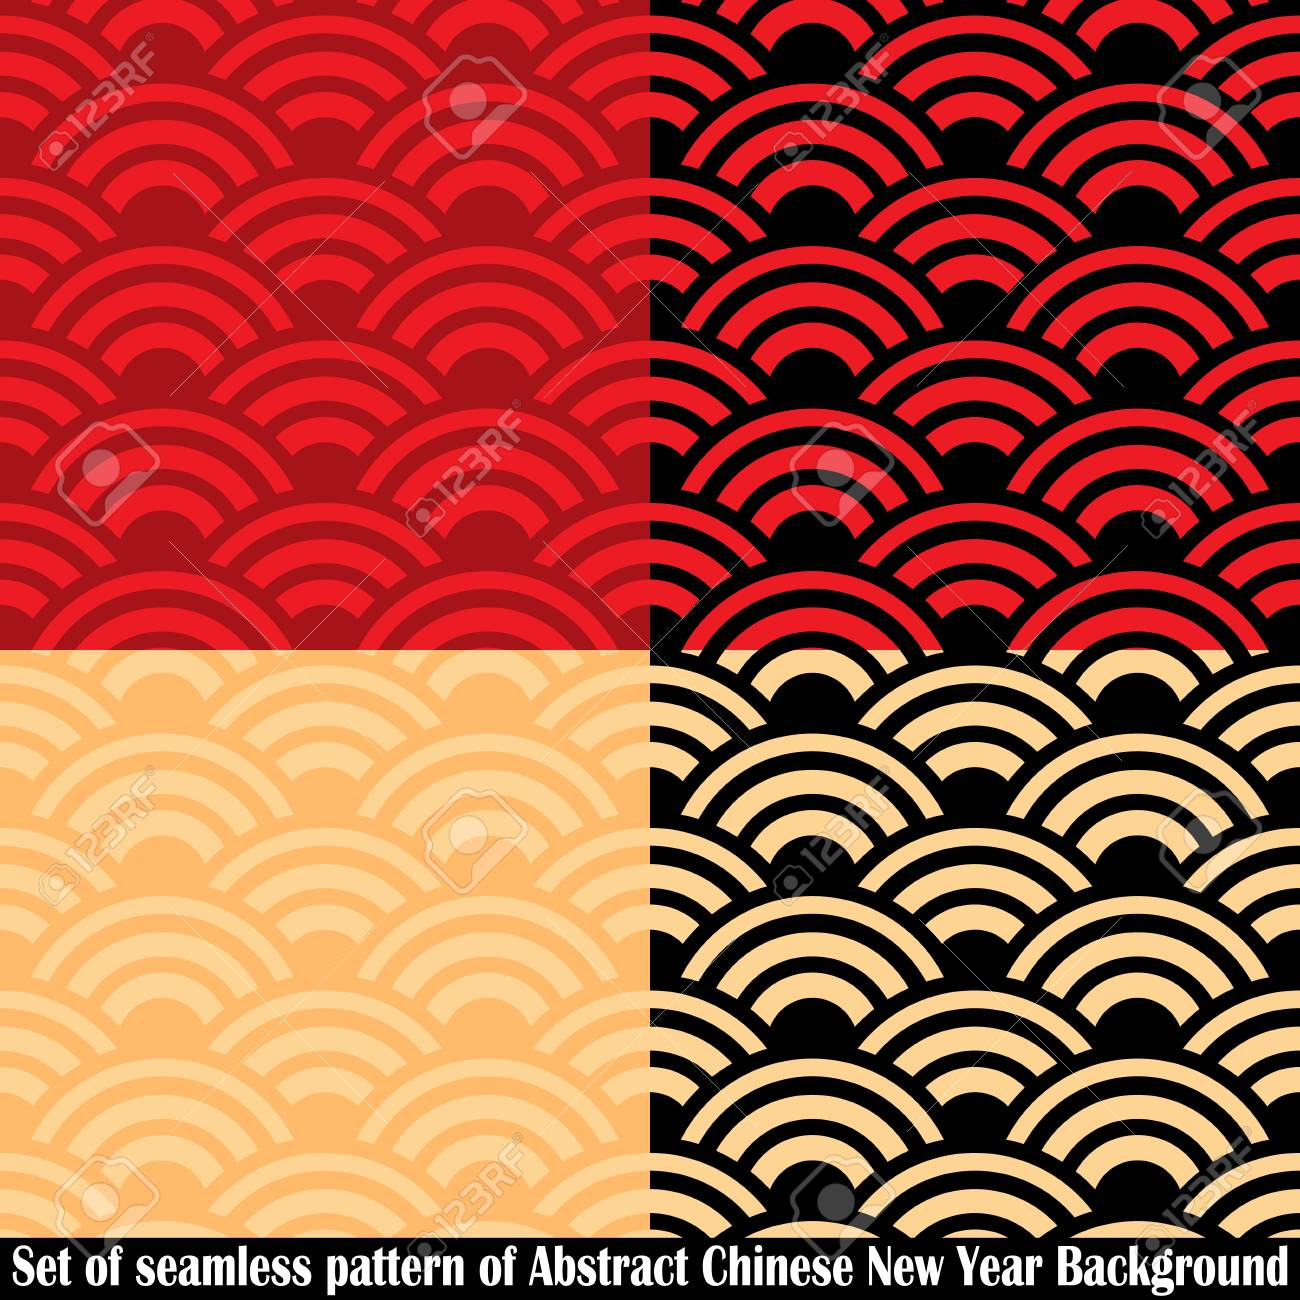 set of seamless pattern of abstract chinese new year background vector design vector illustration of